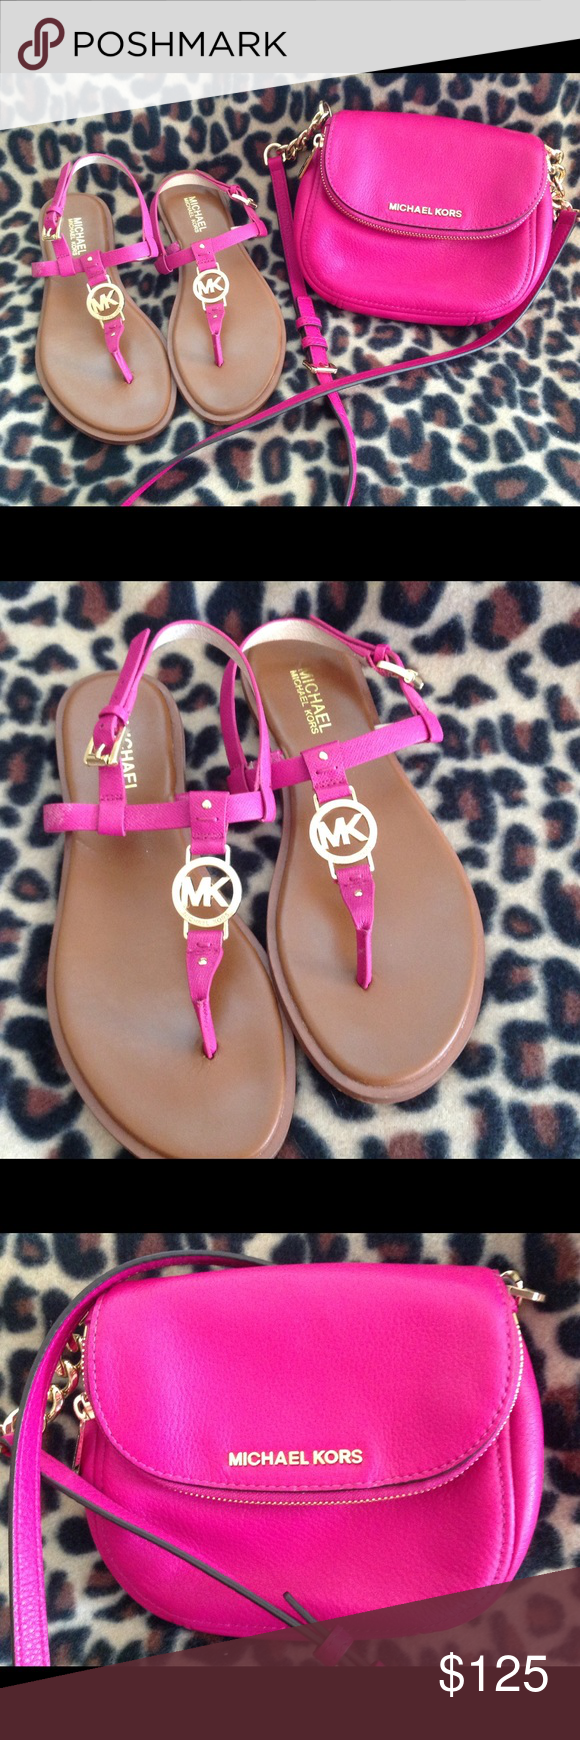 40a6eabae4e274 Michael Kors Sandals and Matching Crossbody Bag Bright fuchsia Michael Kors  flat logo sandals with matching cross body bag. Beautiful color fuchsia  with ...